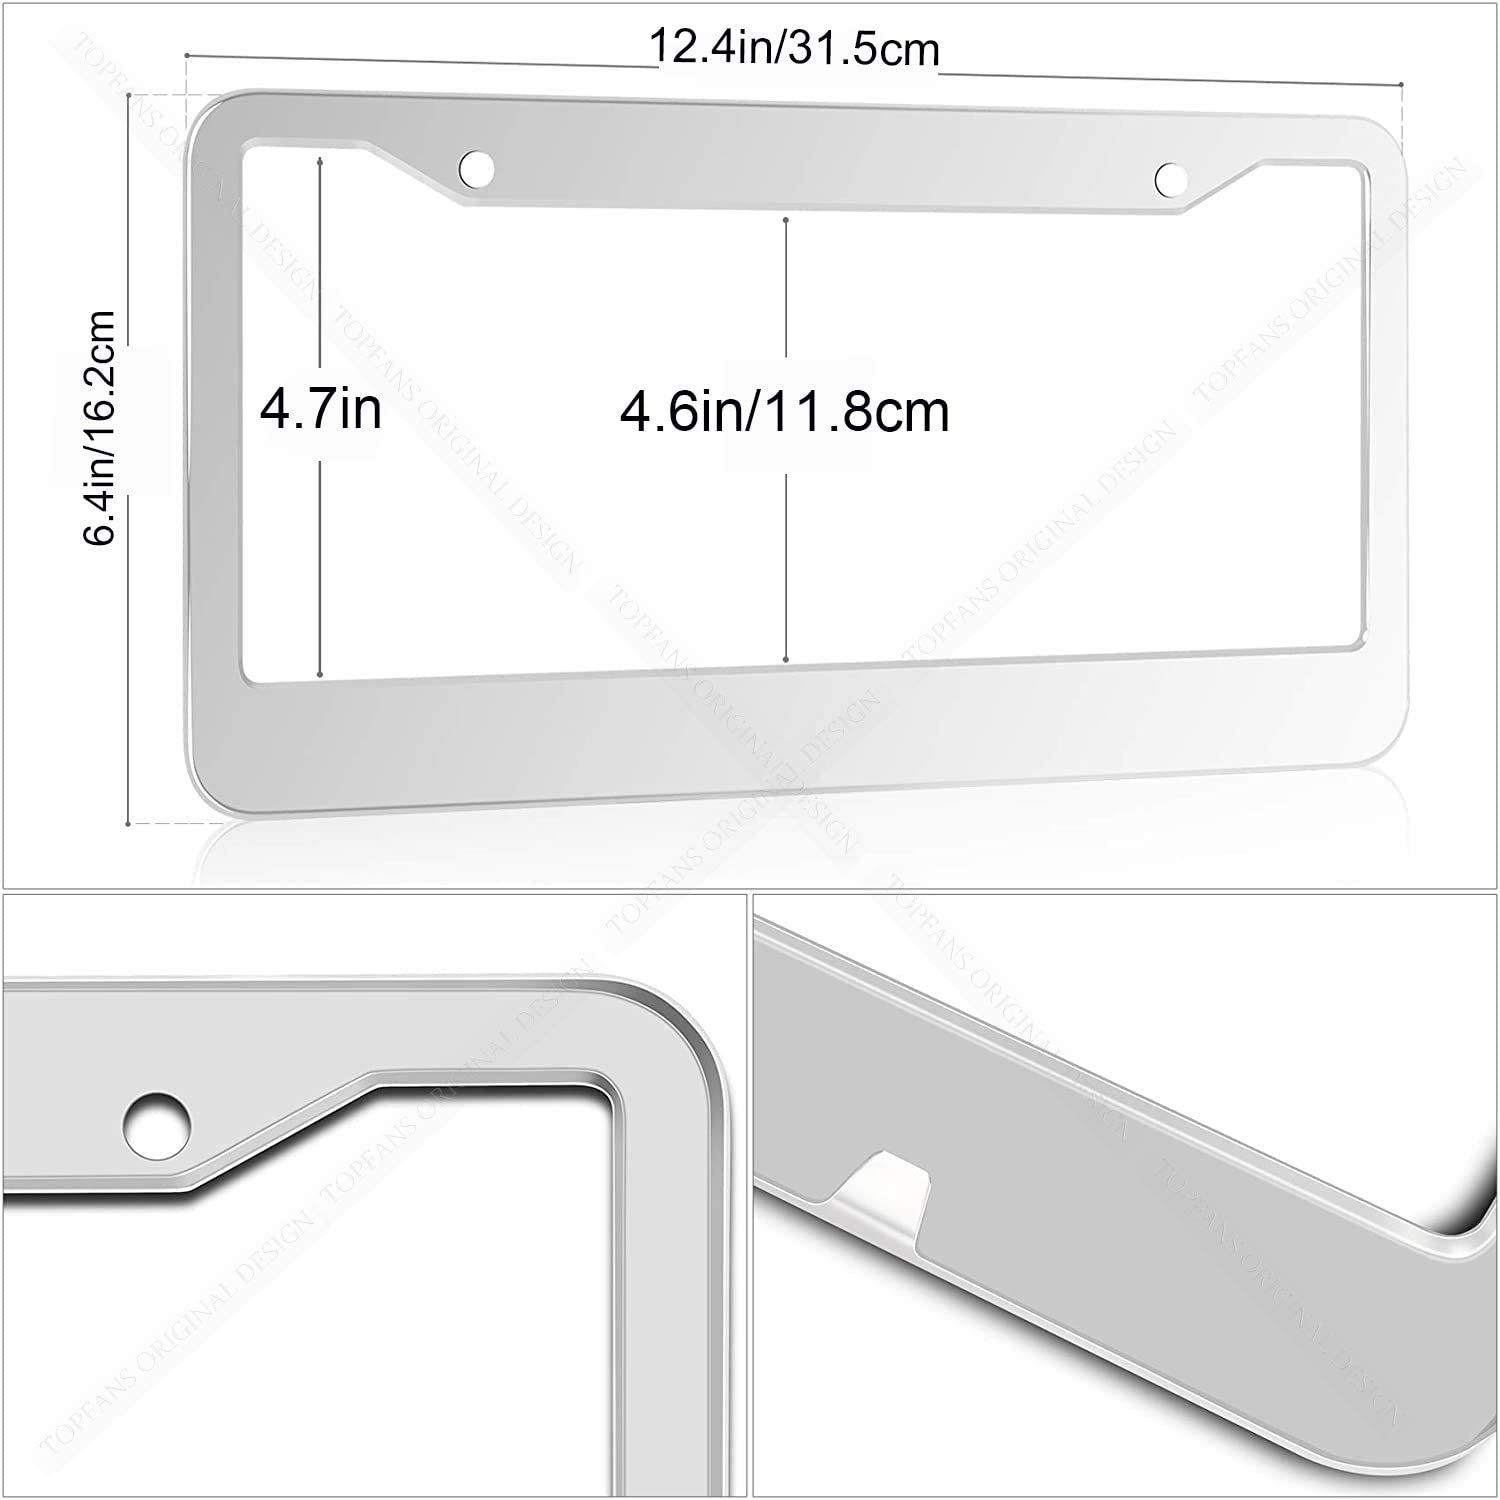 Rattle-Proof Chrome 2 Pack Bling Stainless Steel Polish Mirror Silver Colts License Plate Frames,Universal US Auto Colts Car Licenses Plate Covers Holders,Rust-Proof Weather-Proof